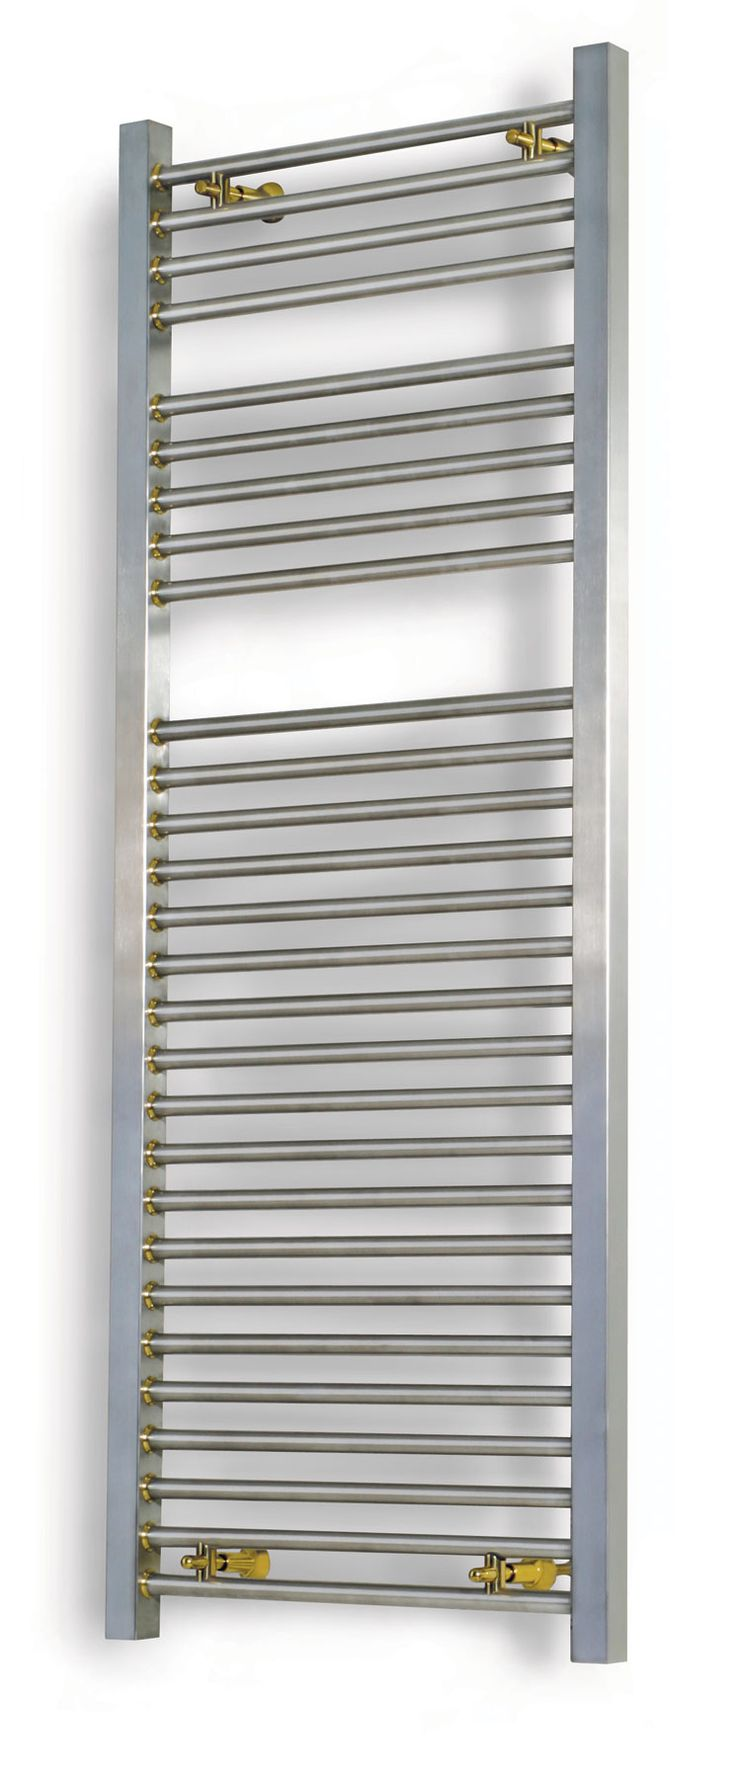 The Aeon Serhad towel rail is suitable for all heating systems as it is manufactured from stainless steel. Reliable and bold this chic design brungs the humble towel rail bang up to date with neat chrome rings between the joints of the vertical & horizontal bars. This product is available in a brushed or polished stainless. Standard central heating, Electric only and dual fuel options available. Complete with a 20 year guarantee, 1 year guarantee on heating elements. Prices from £382.98!